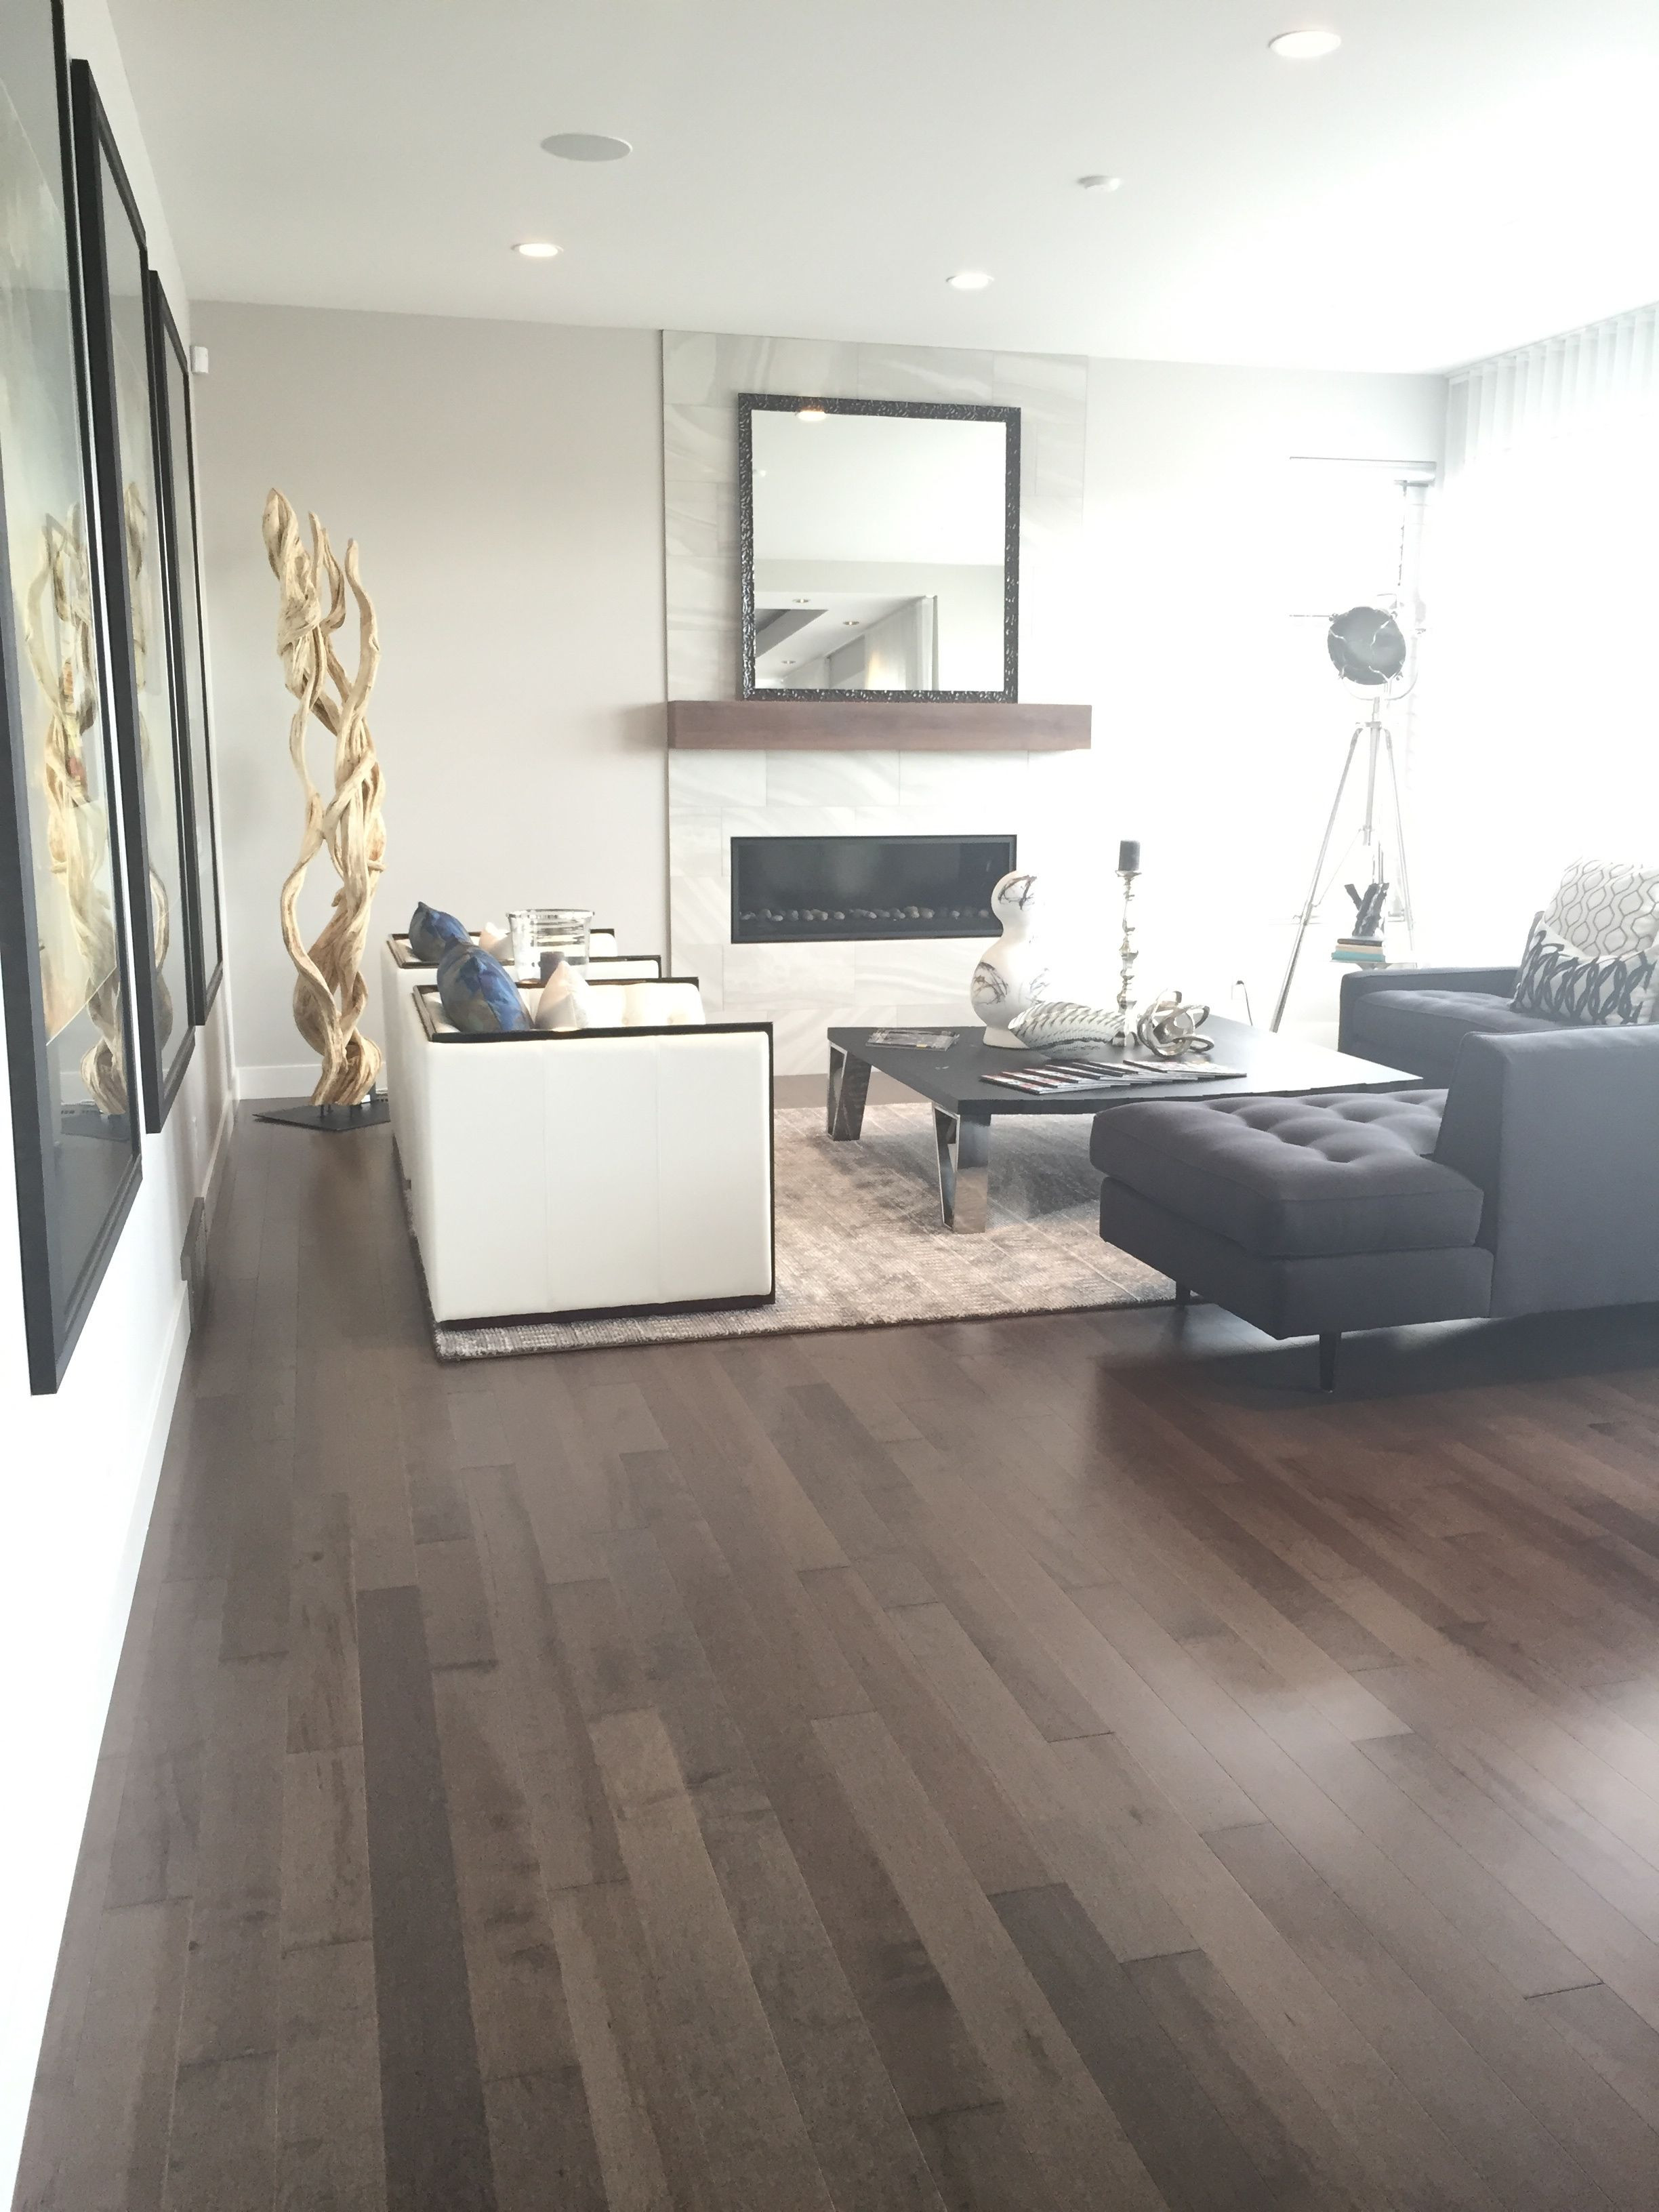 hardwood floor sound barrier of smoky grey essential hard maple tradition lauzon hardwood regarding beautiful living room from the cantata showhome featuring lauzons smokey grey hard maple hardwood flooring from the essential collection